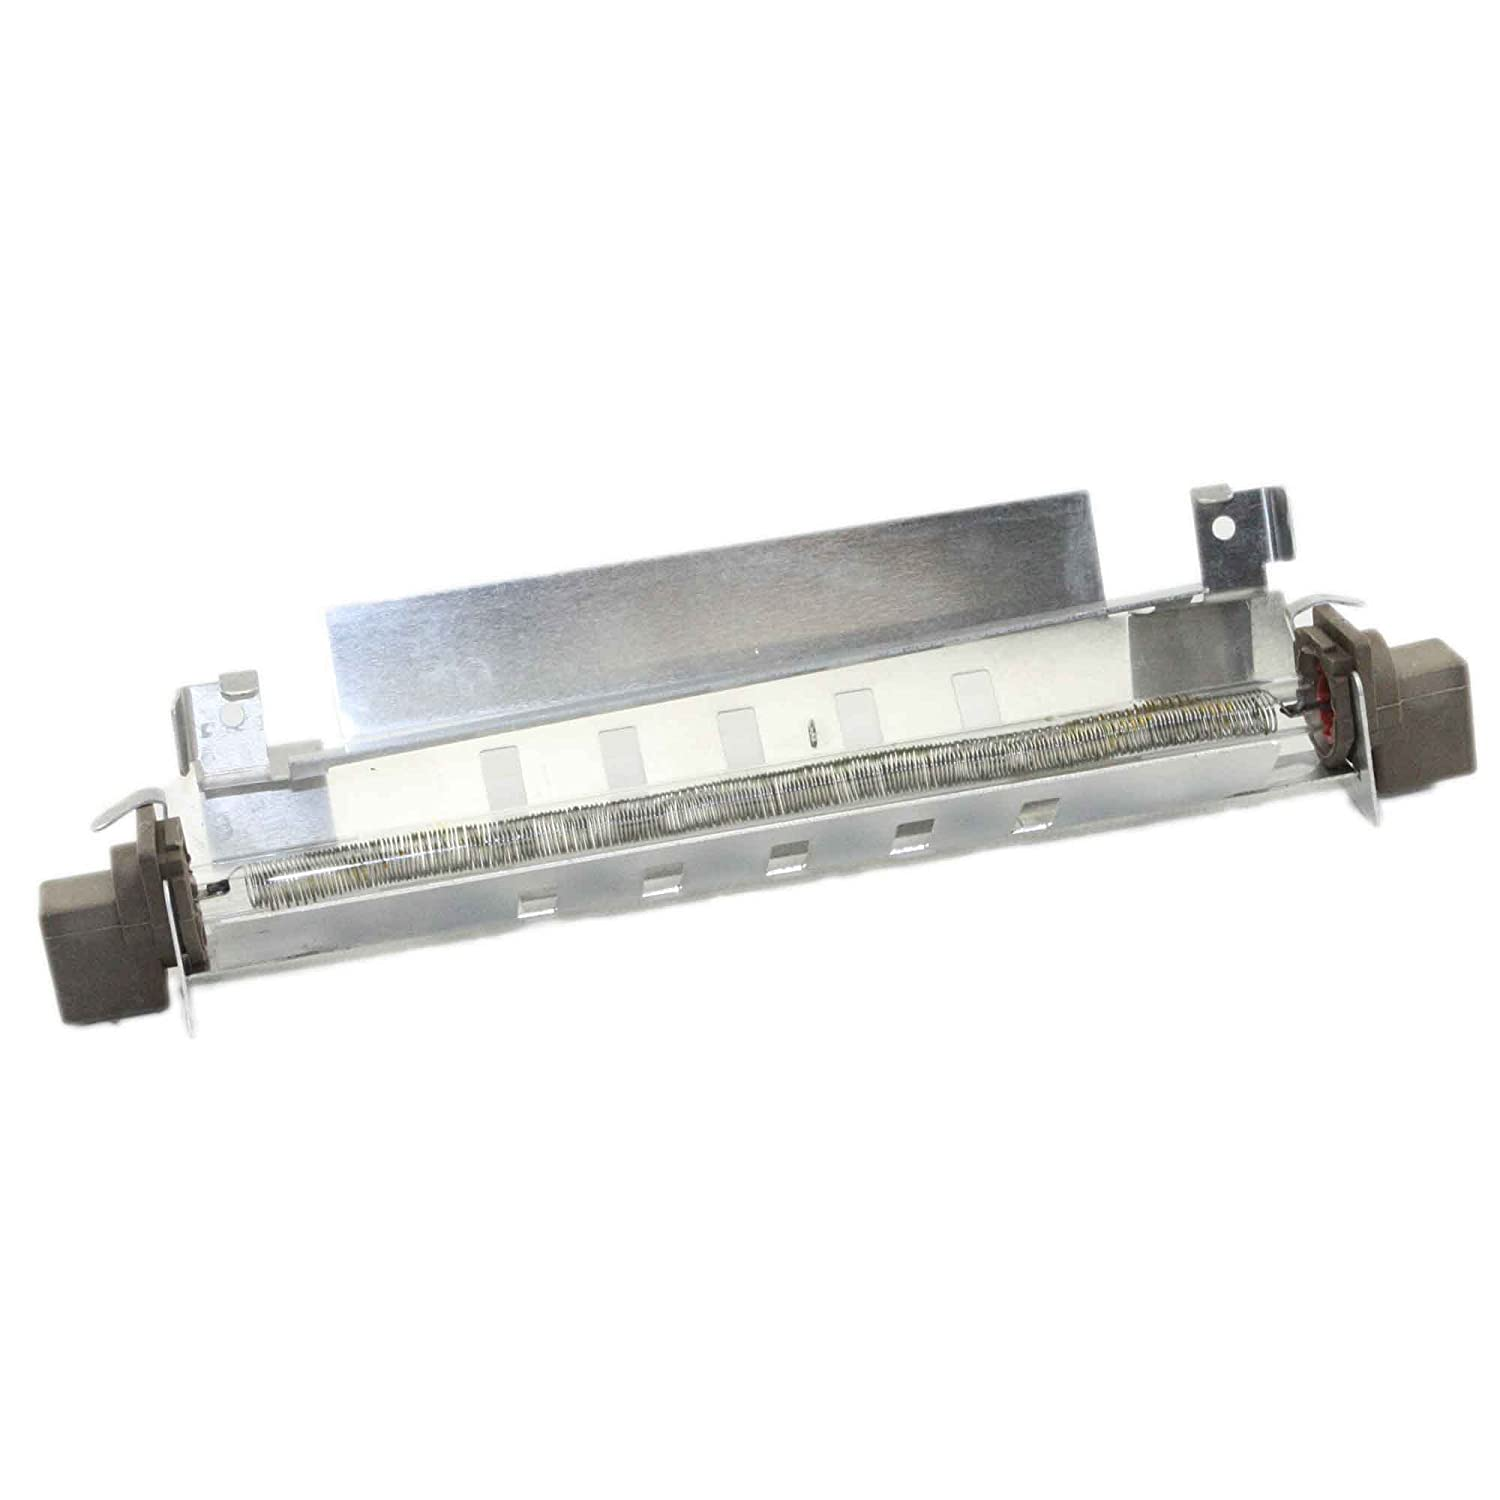 PS1993872 EA1993872 AH1993872 AP4355467 WR51X10097 WR51X10053 Defrost Heater for GE /& Hotpoint Refrigerators by PartsBroz Replaces Part Numbers WR51X10101 WR51X10032 1399613